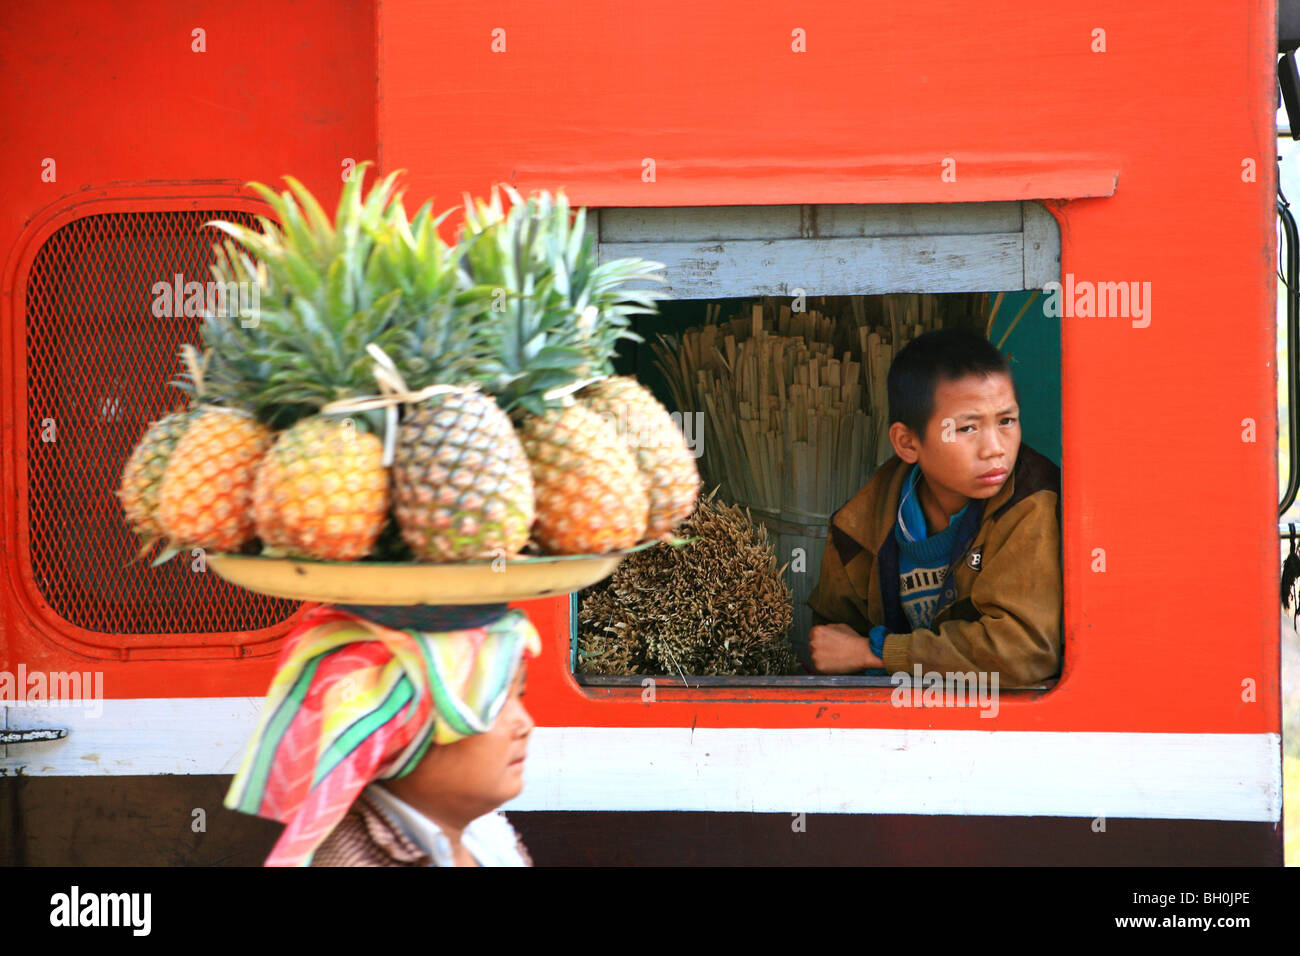 A woman selling fruit, a boy looking out of the window of a train, Hispaw, Shan State, Myanmar, Burma, Asia Stock Photo